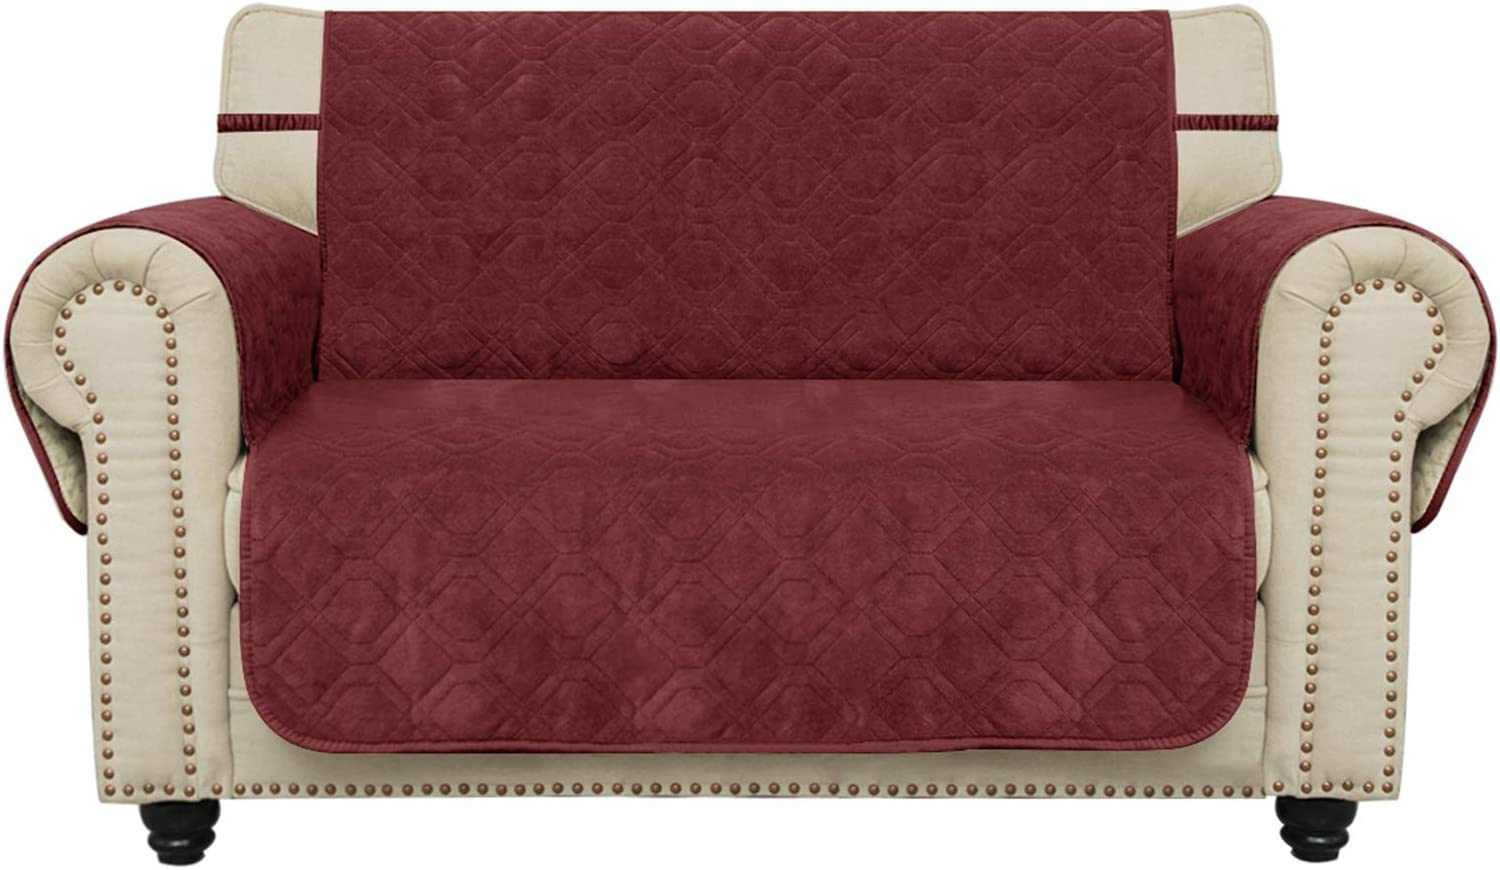 Ameritex Waterproof Loveseat Cover Oversized Coral Fleece Furniture Protector Anti-Slip Updated Pattern Supper Soft and Warm Pet Sofa Cover for Dogs and Children (Burgundy, Loveseat(Oversized))